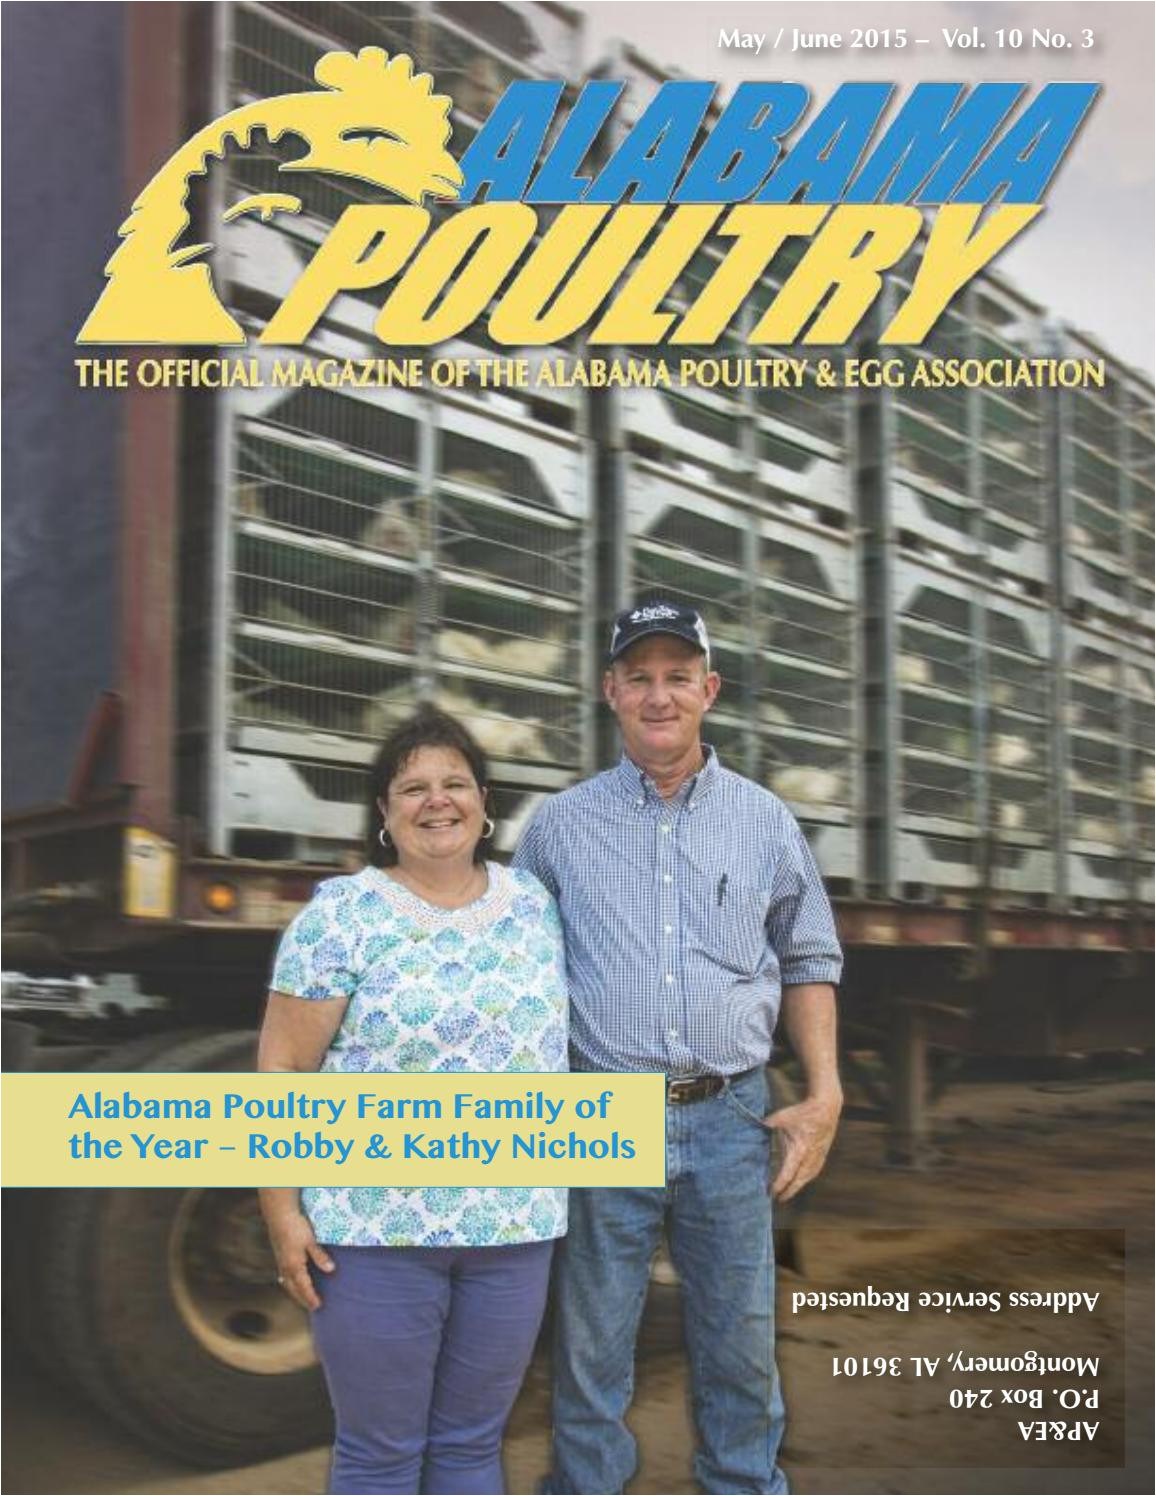 alabama poultry may june 2015 by alabama poultry egg association issuu